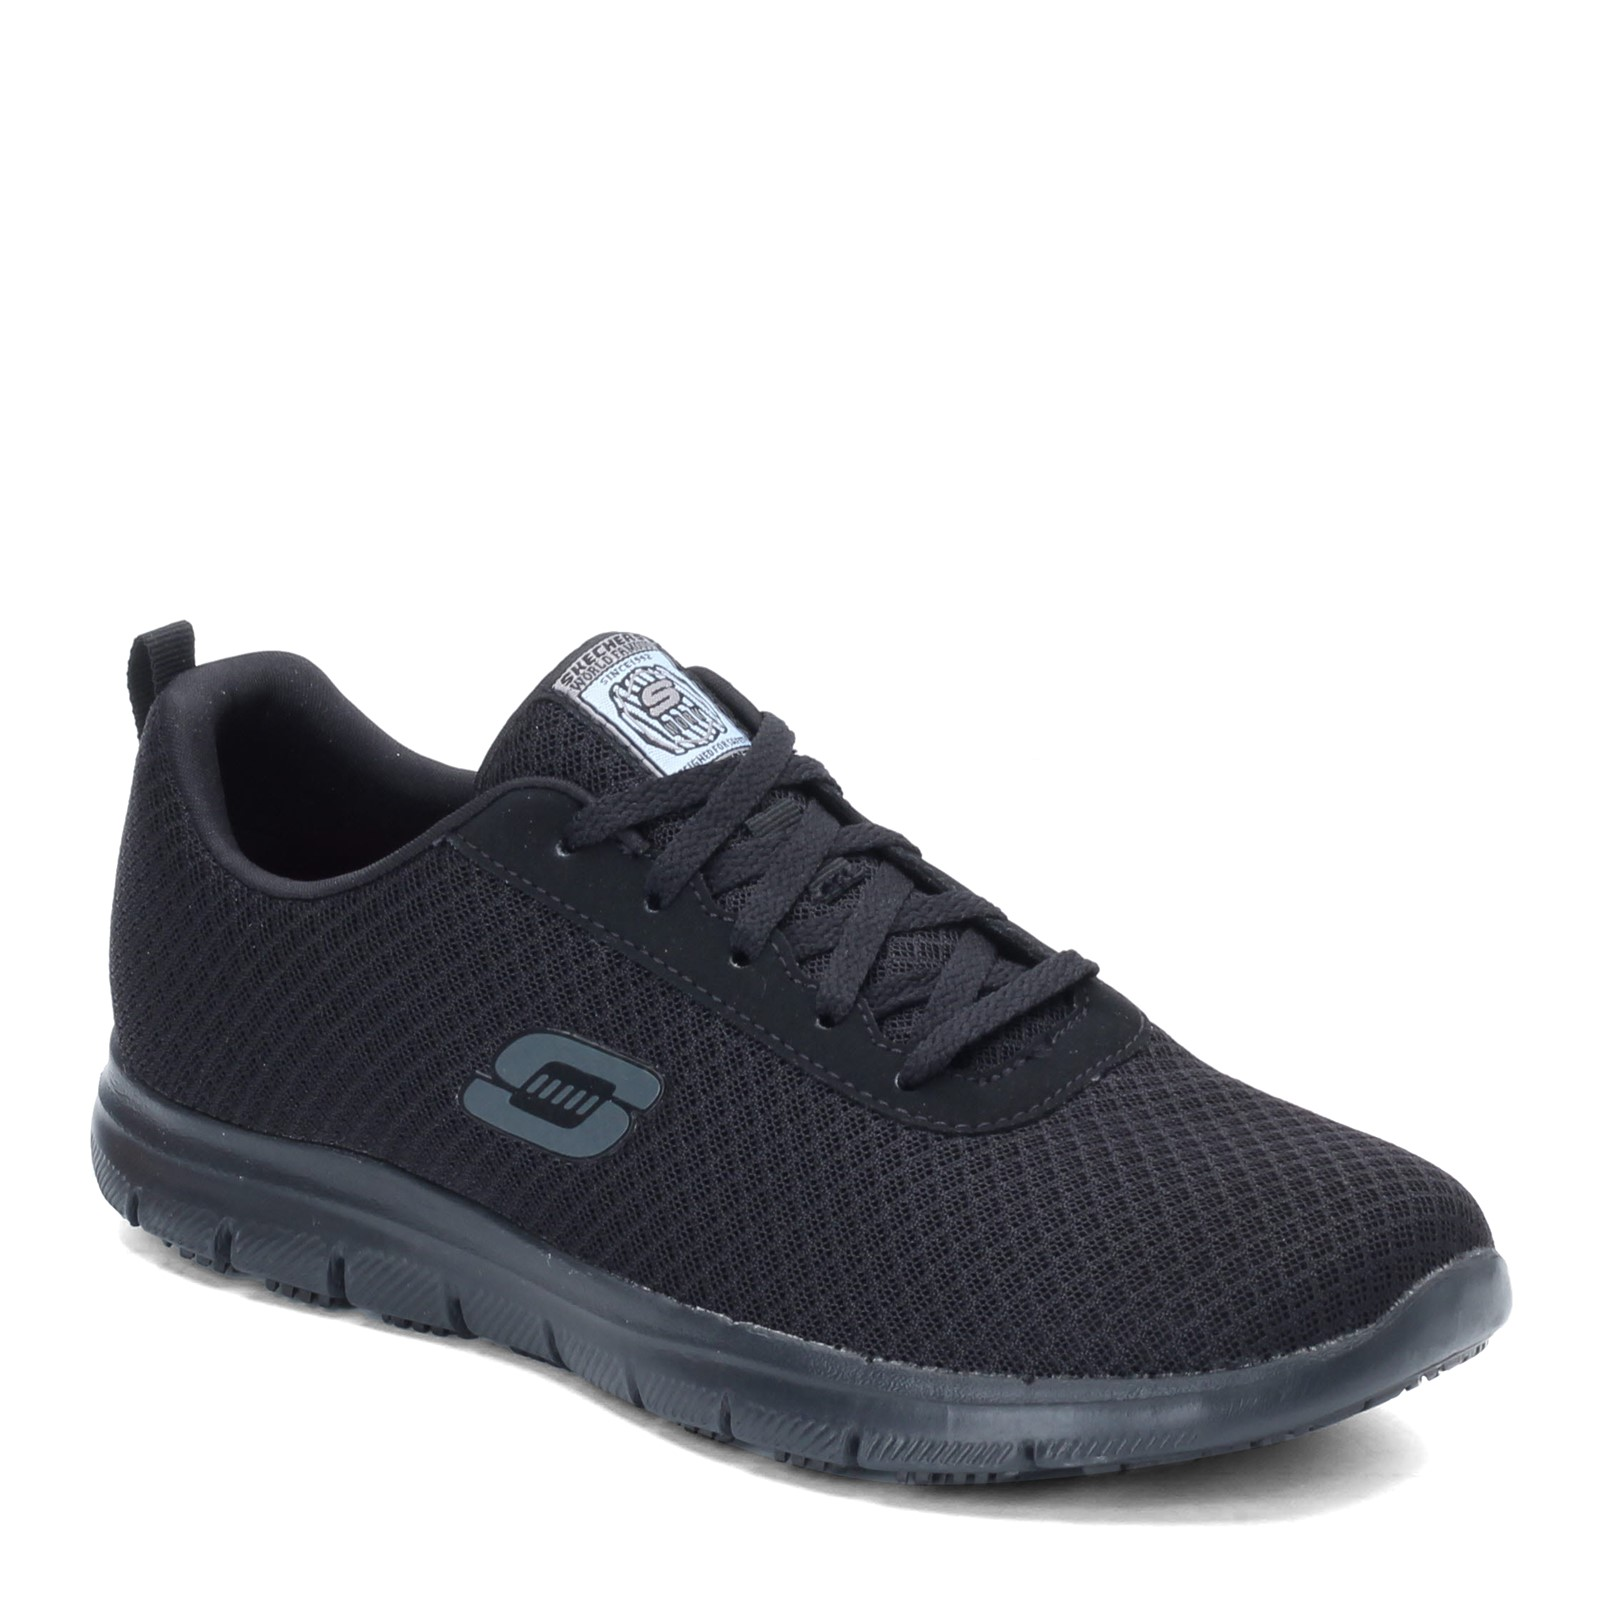 Women's Skechers, Ghenter - Bronaugh SR Work Shoe